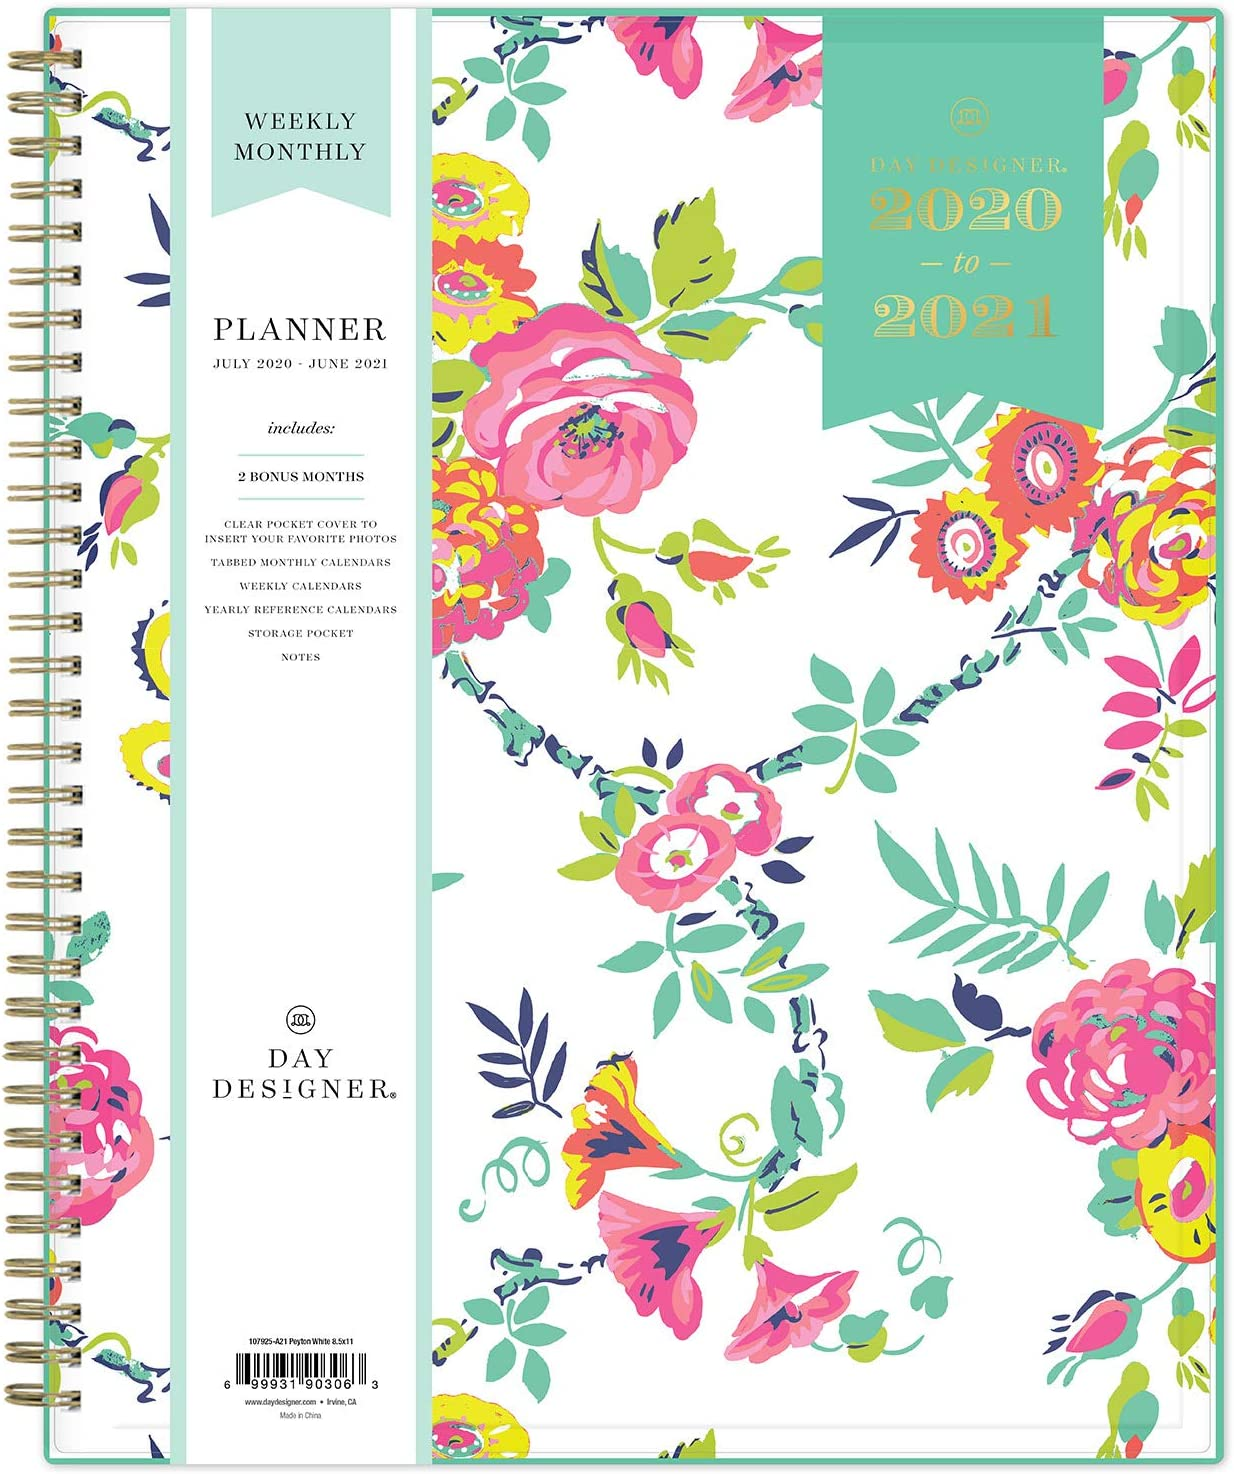 "Day Designer for Blue Sky 2020-2021 Academic Year Weekly & Monthly Planner, Flexible Cover, Twin-Wire Binding, 8.5"" x 11"", Peyton White : Office Products"